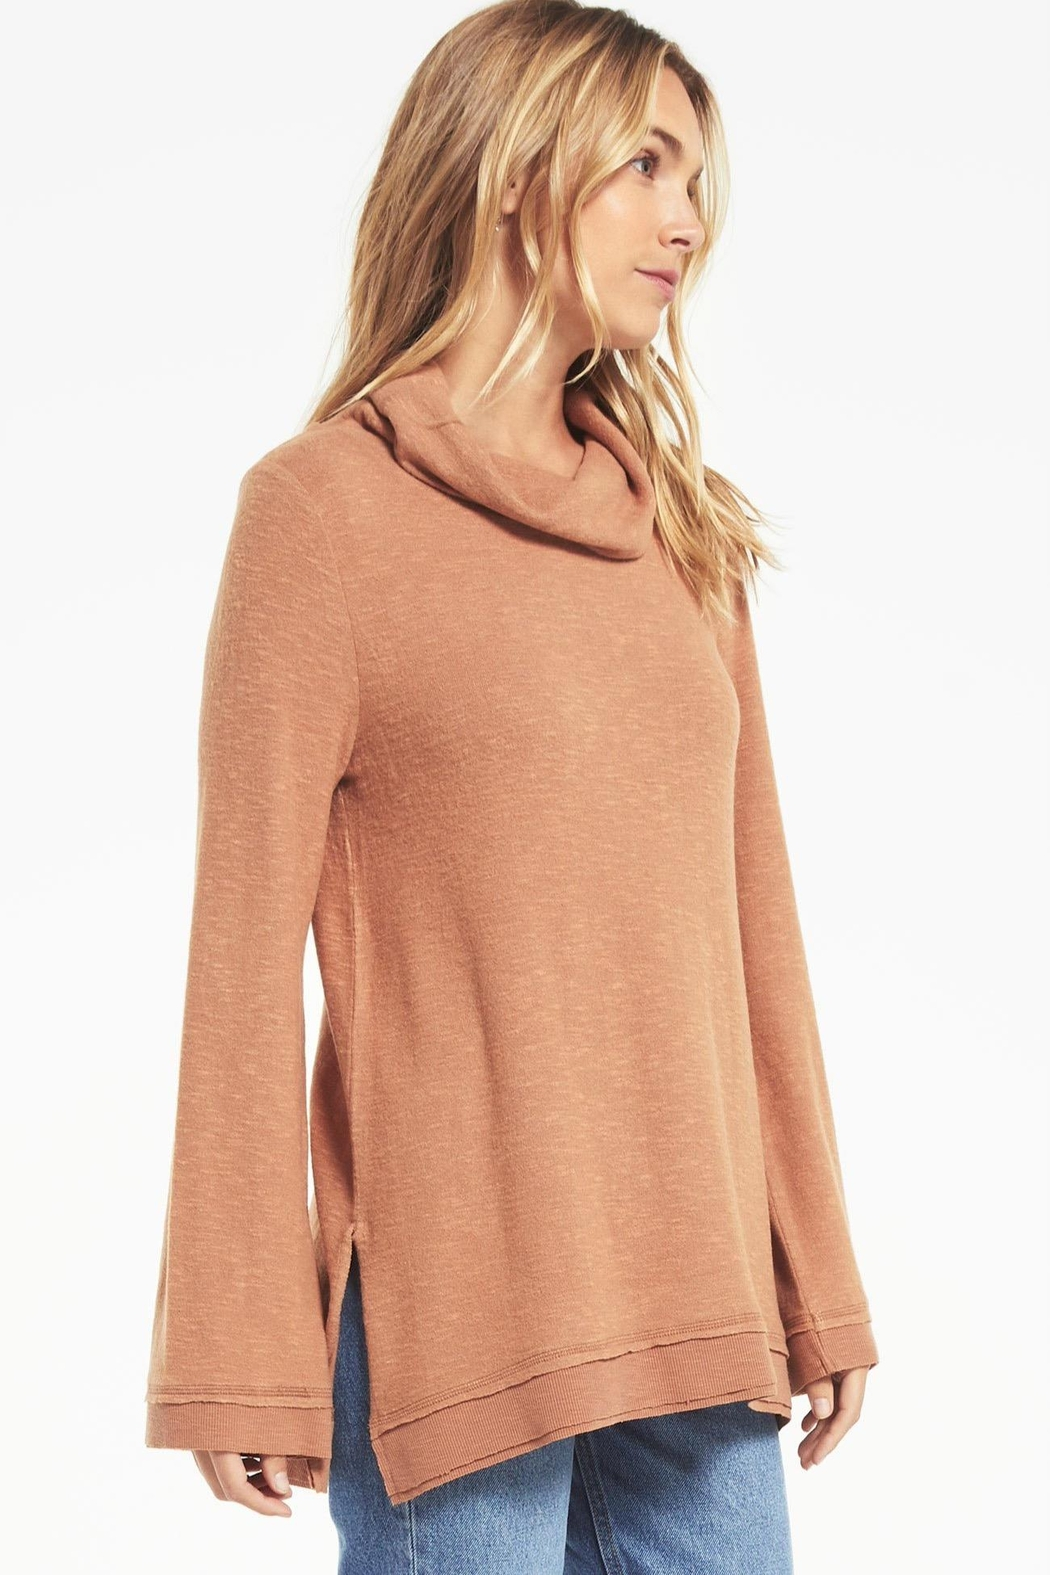 z supply Ali Cowl Sweater - Back Cropped Image